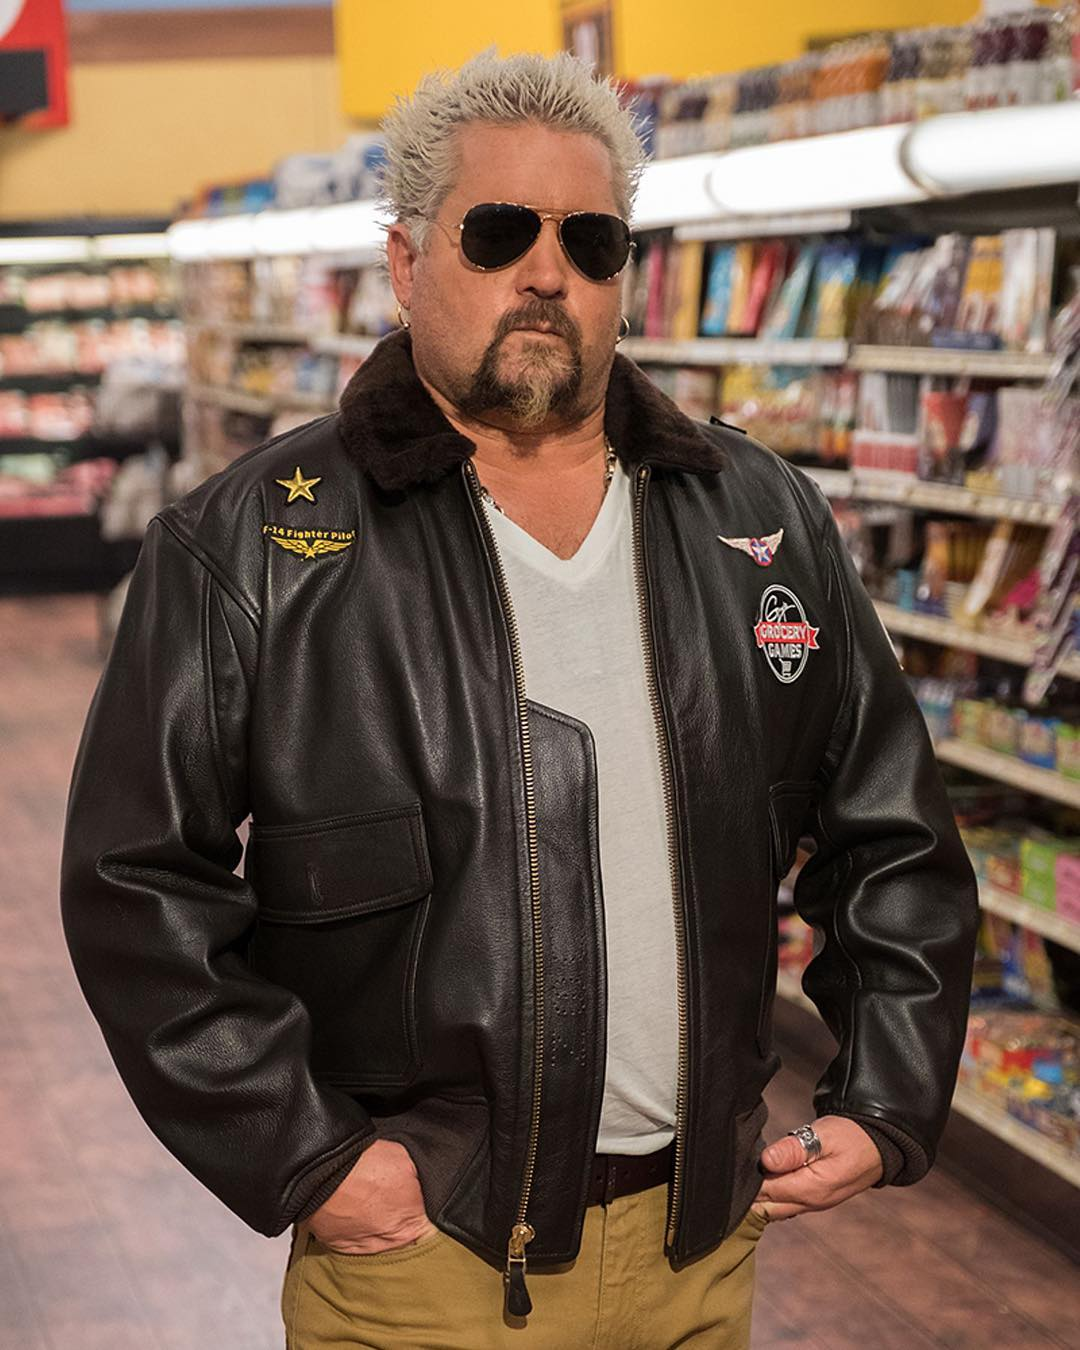 Guy Fieri at a store wearing a leather jacket and sun glass